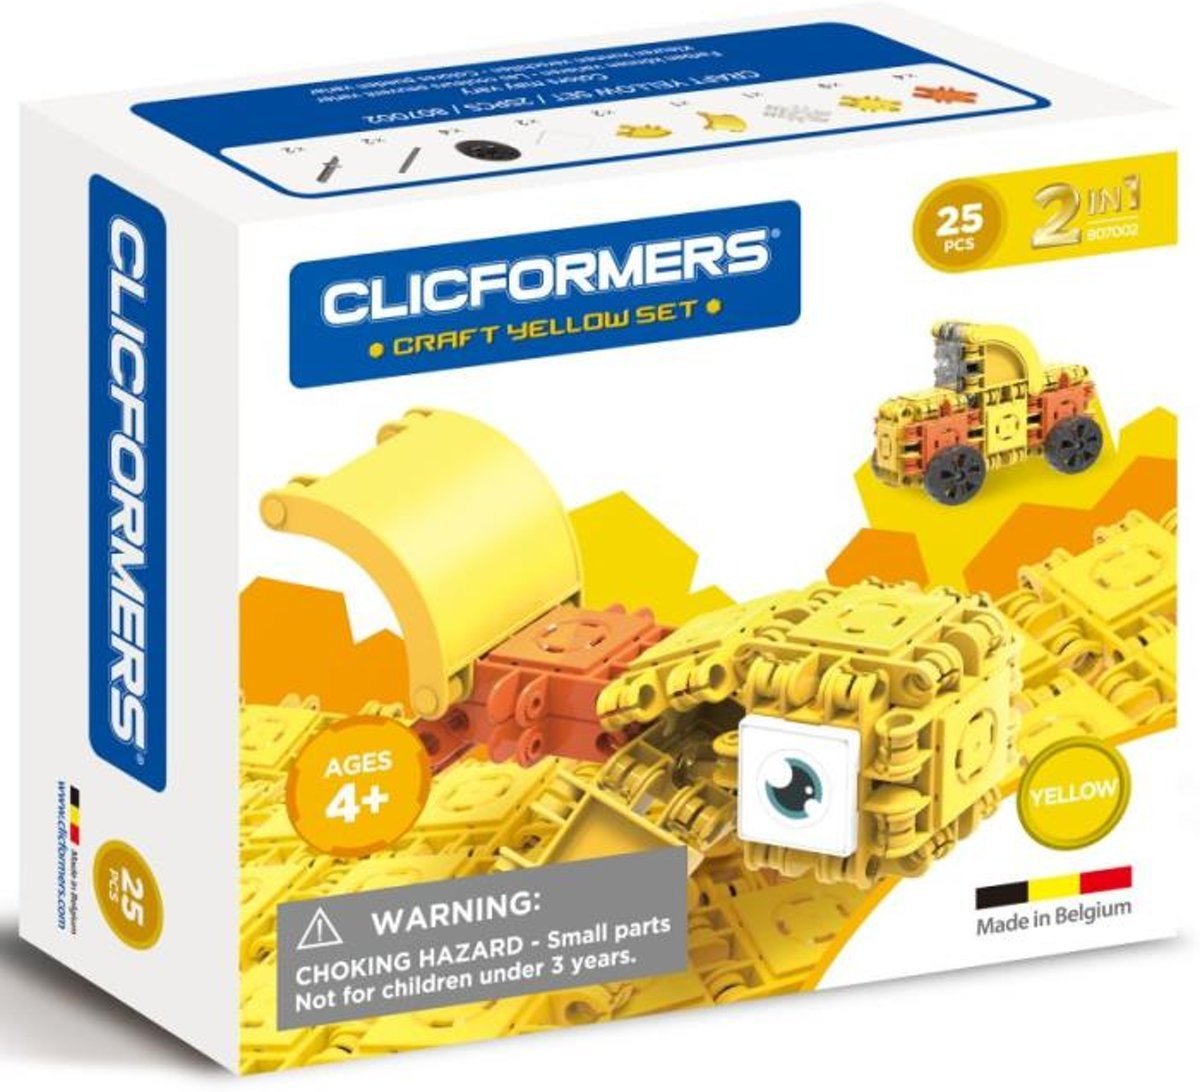 Clicformers - Craft Set Yellow - 25 pcs